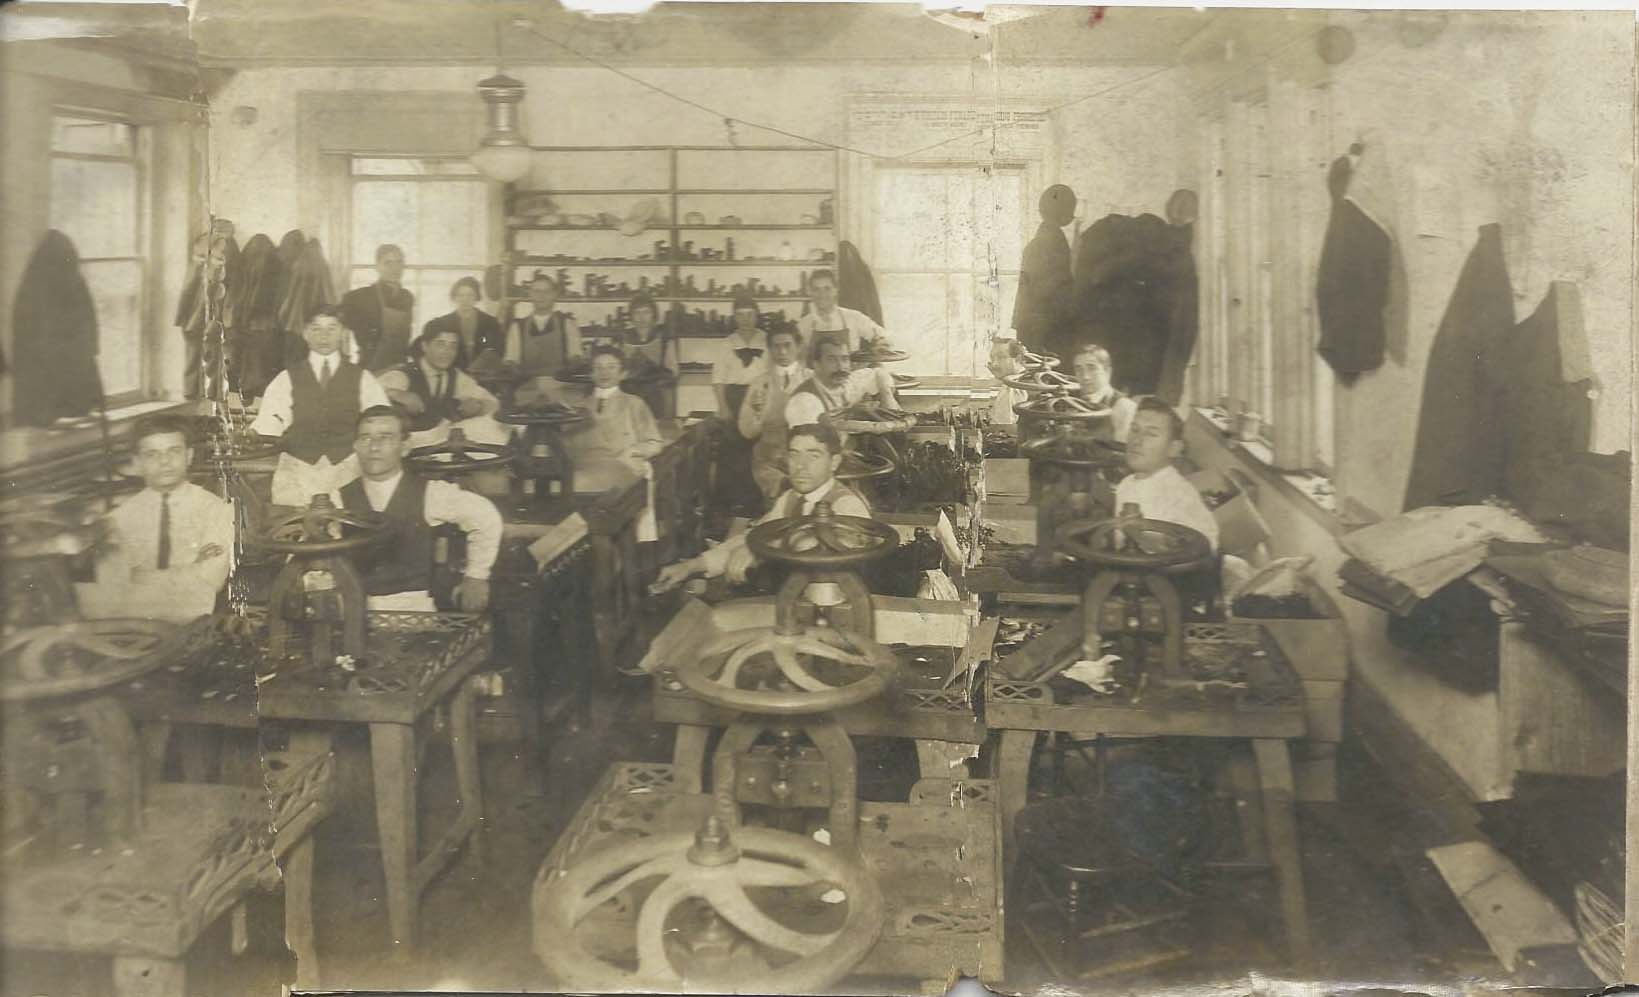 Picture of factory about 1920s